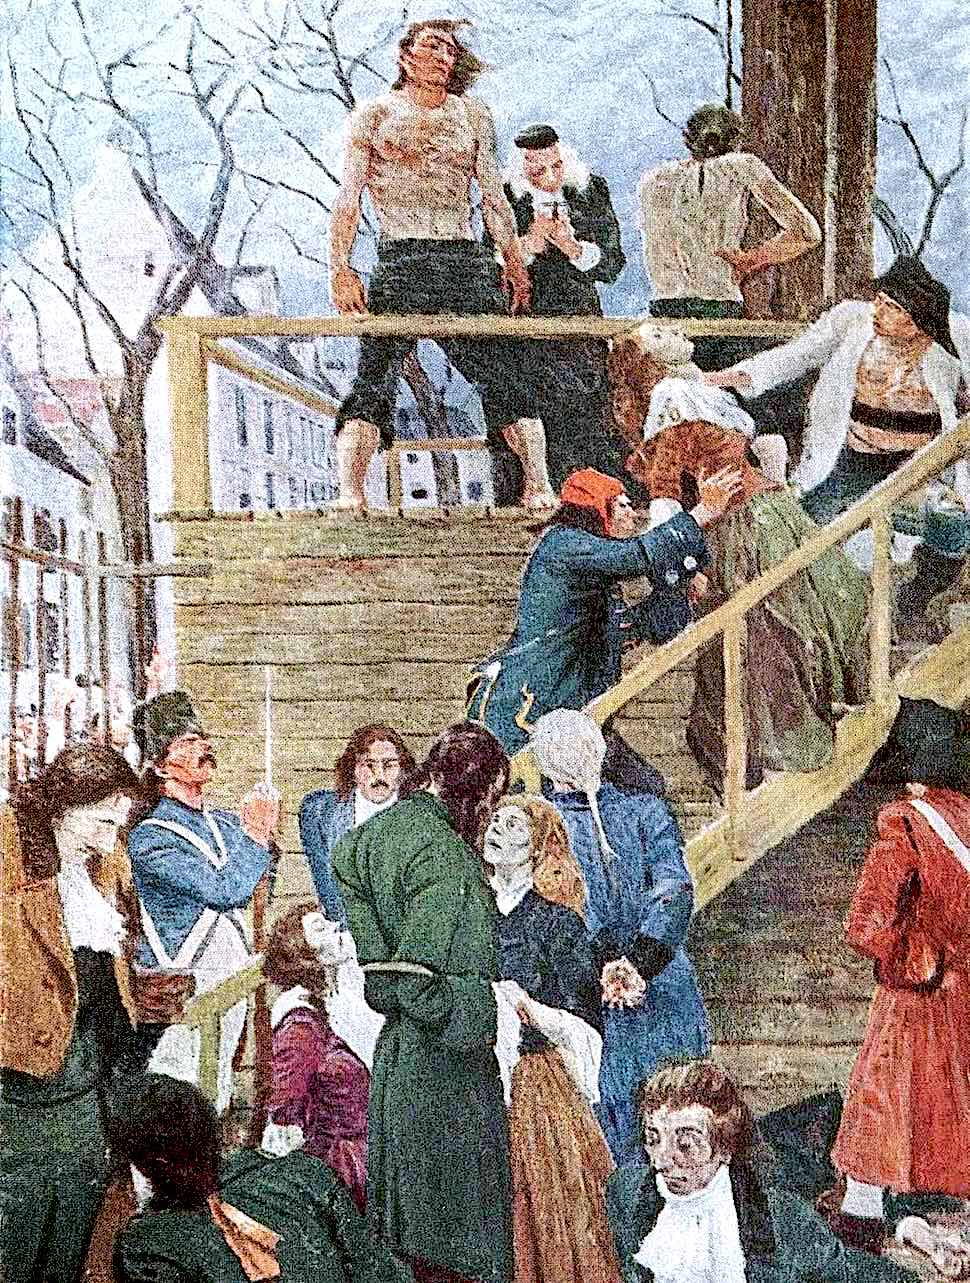 a Harvey Dunn illustration of the French revolution & guillotine